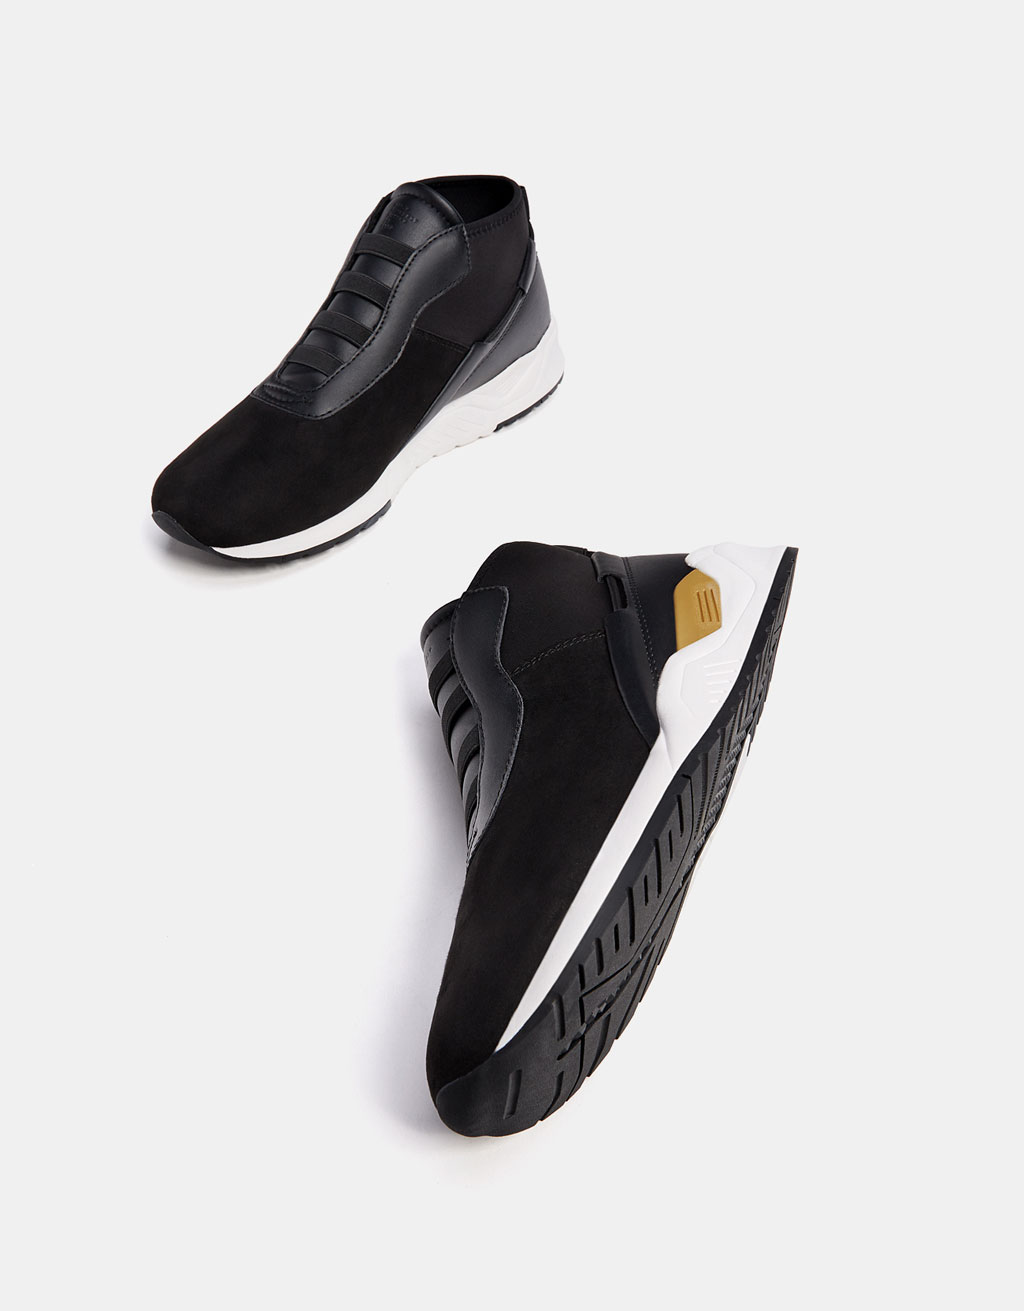 Men's technical high top sneakers with stretch detail